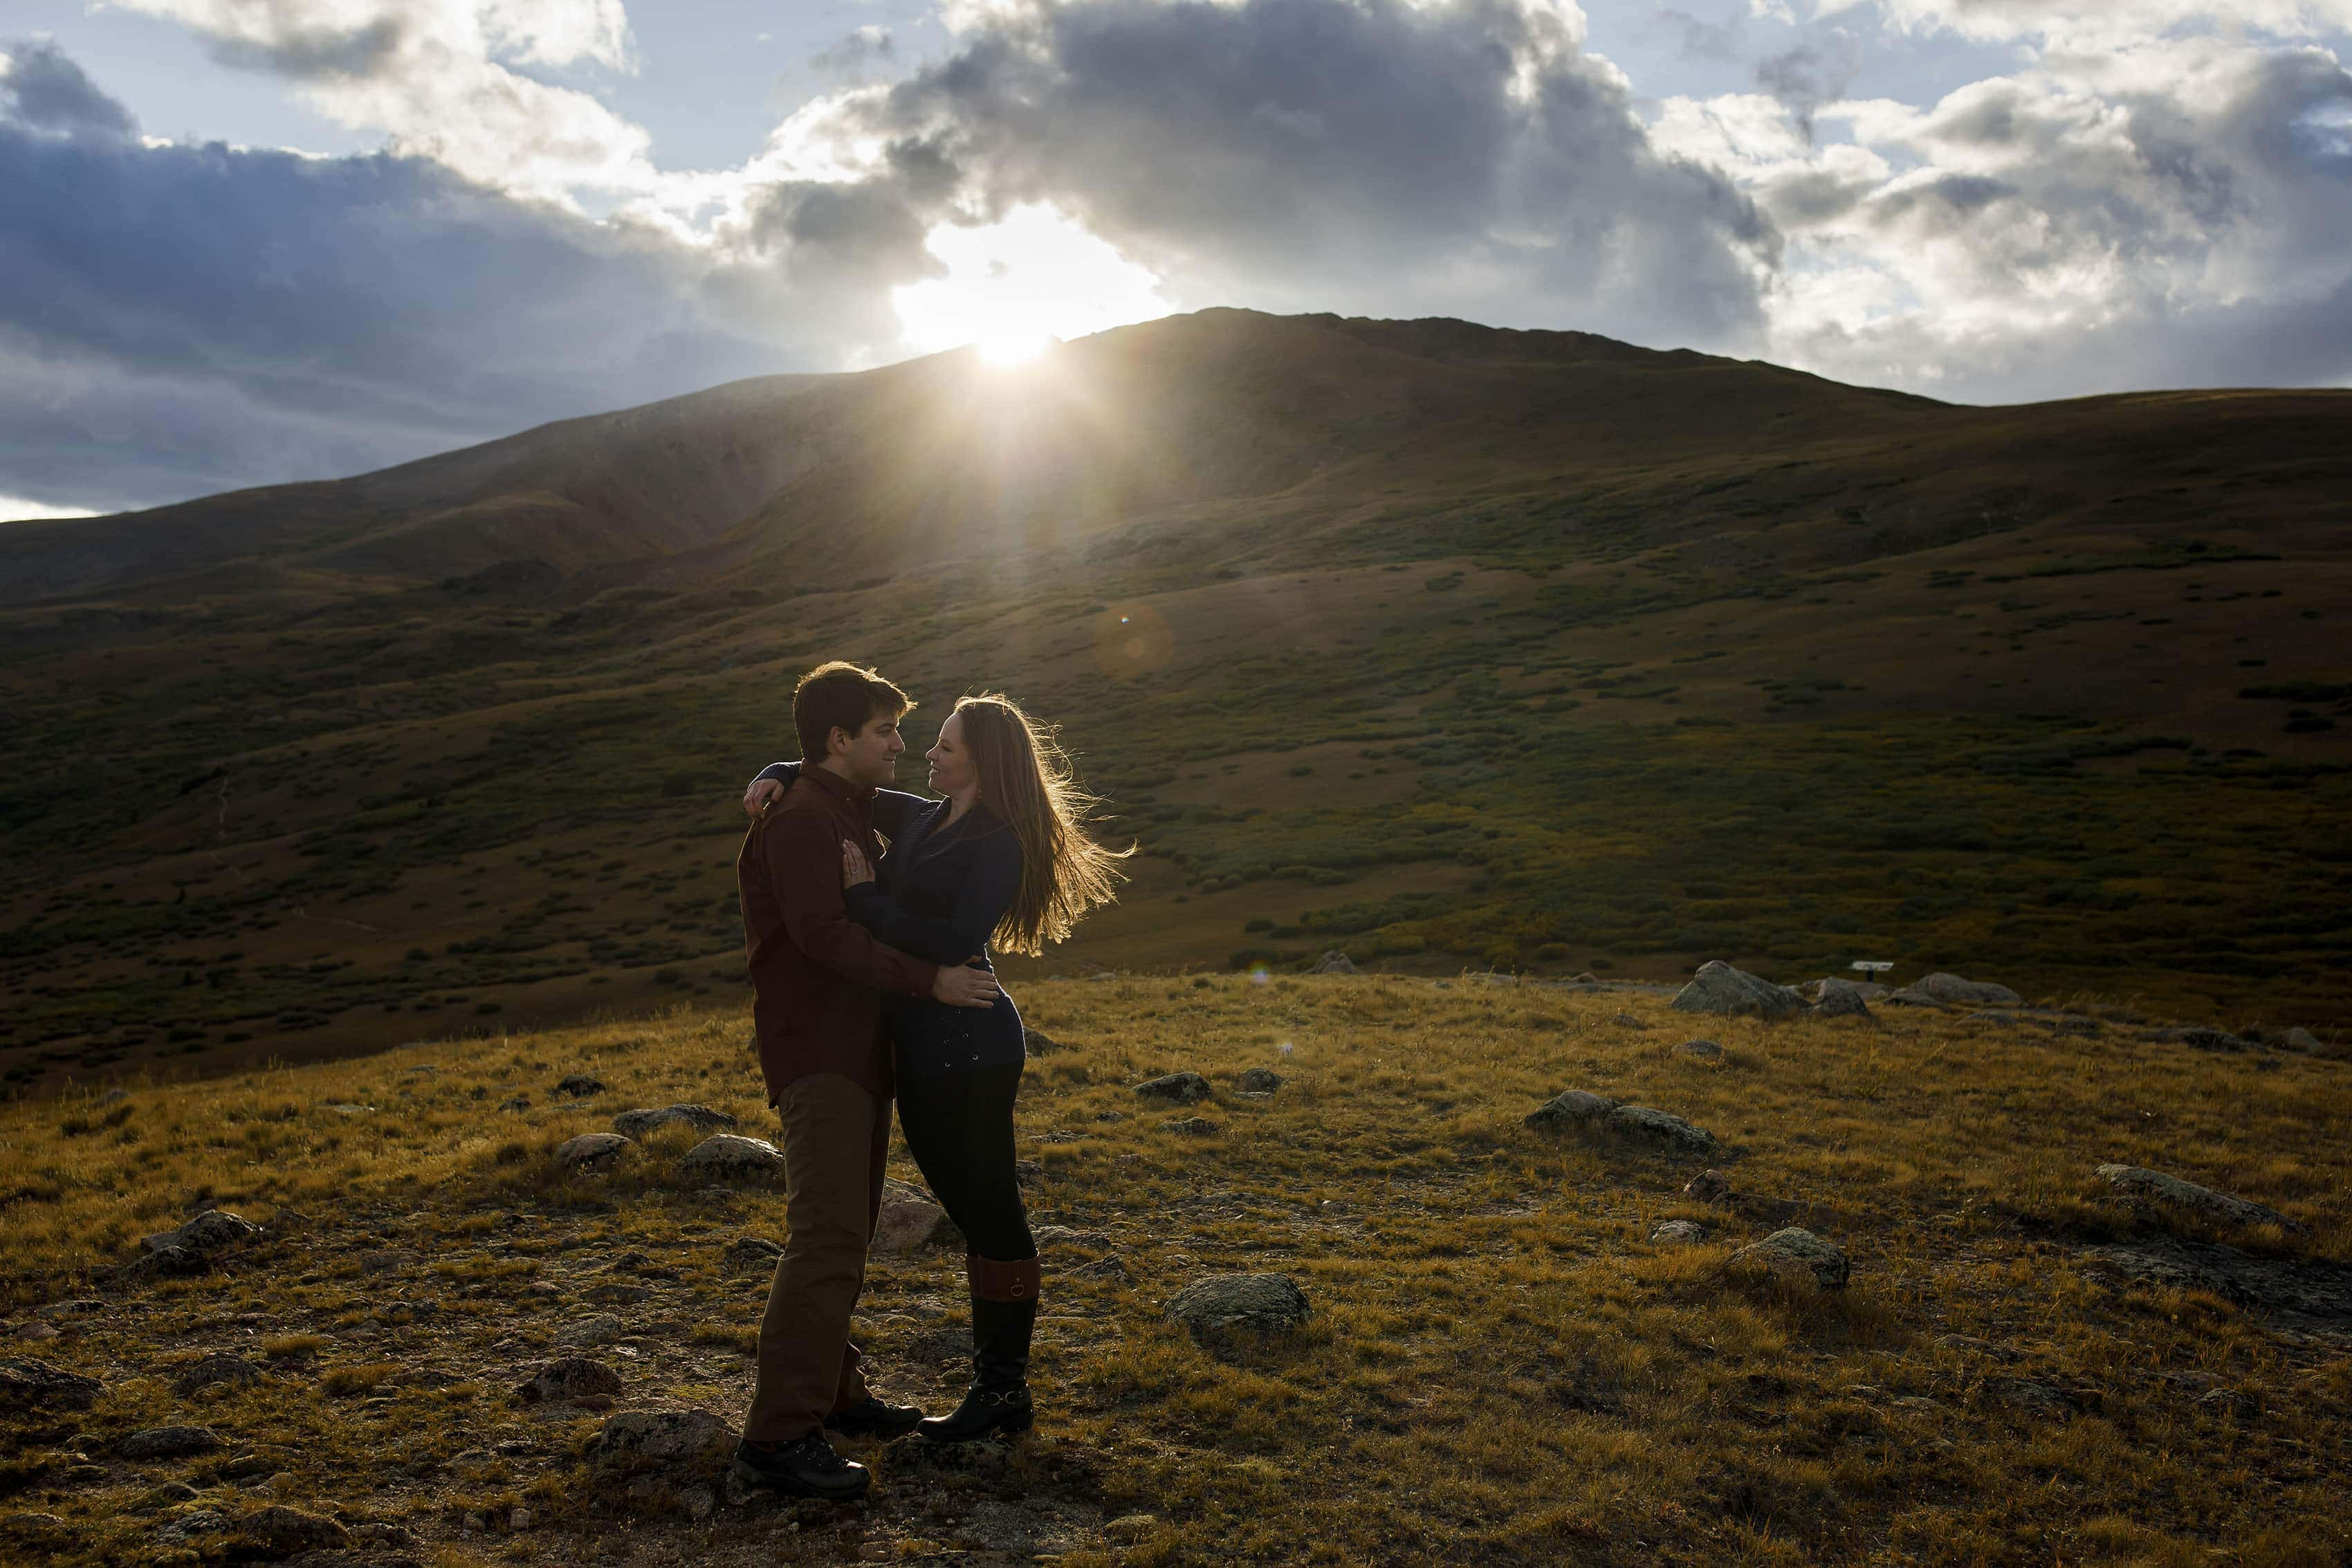 The sun sets over Square Top Mountain as a couple poses during their engagement photos at Guanella Pass